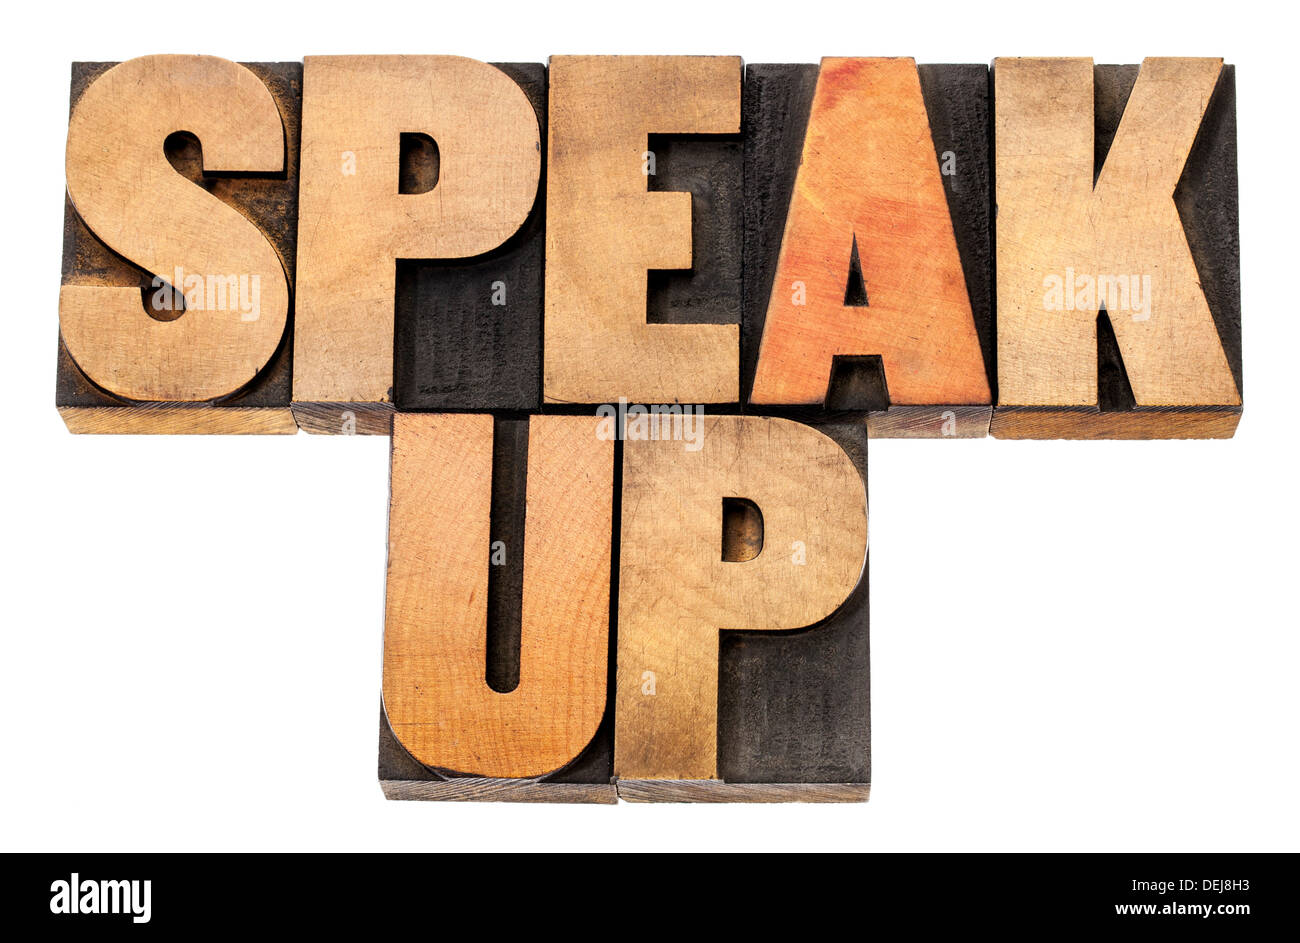 speak up - motivation concept - isolated text in letterpress wood type - Stock Image